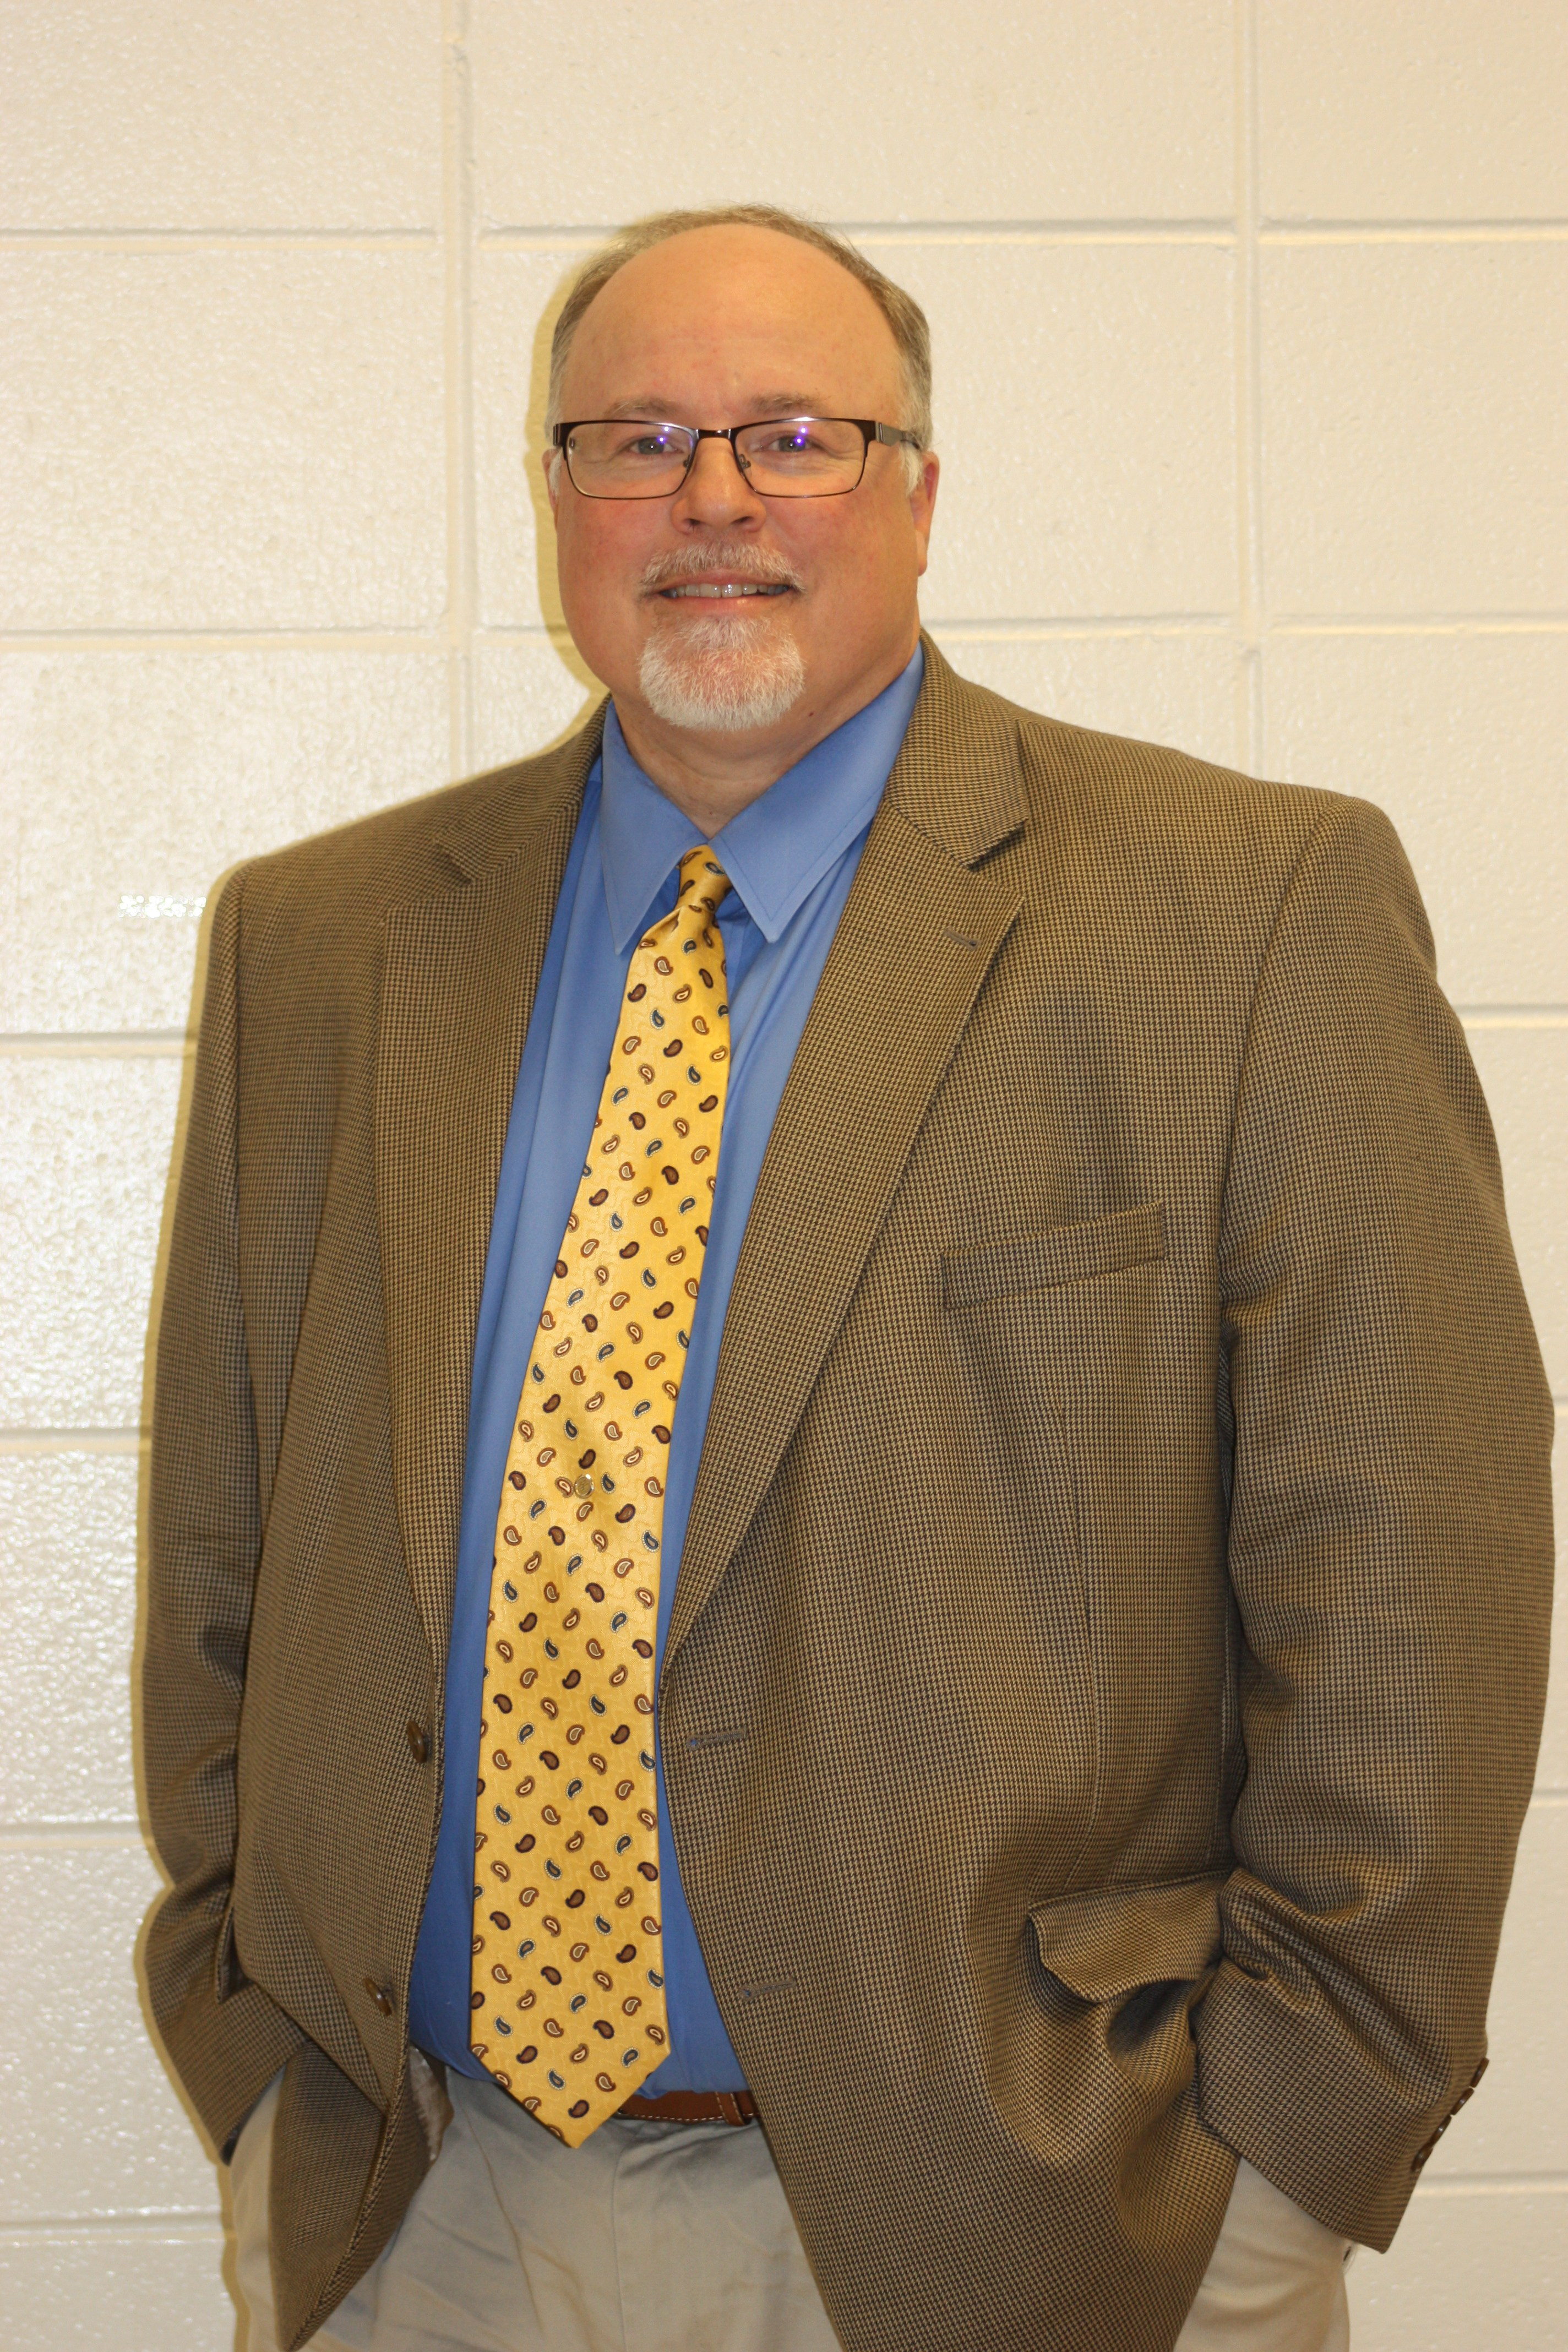 Picture of Mr. Duane McGee, Superintendent